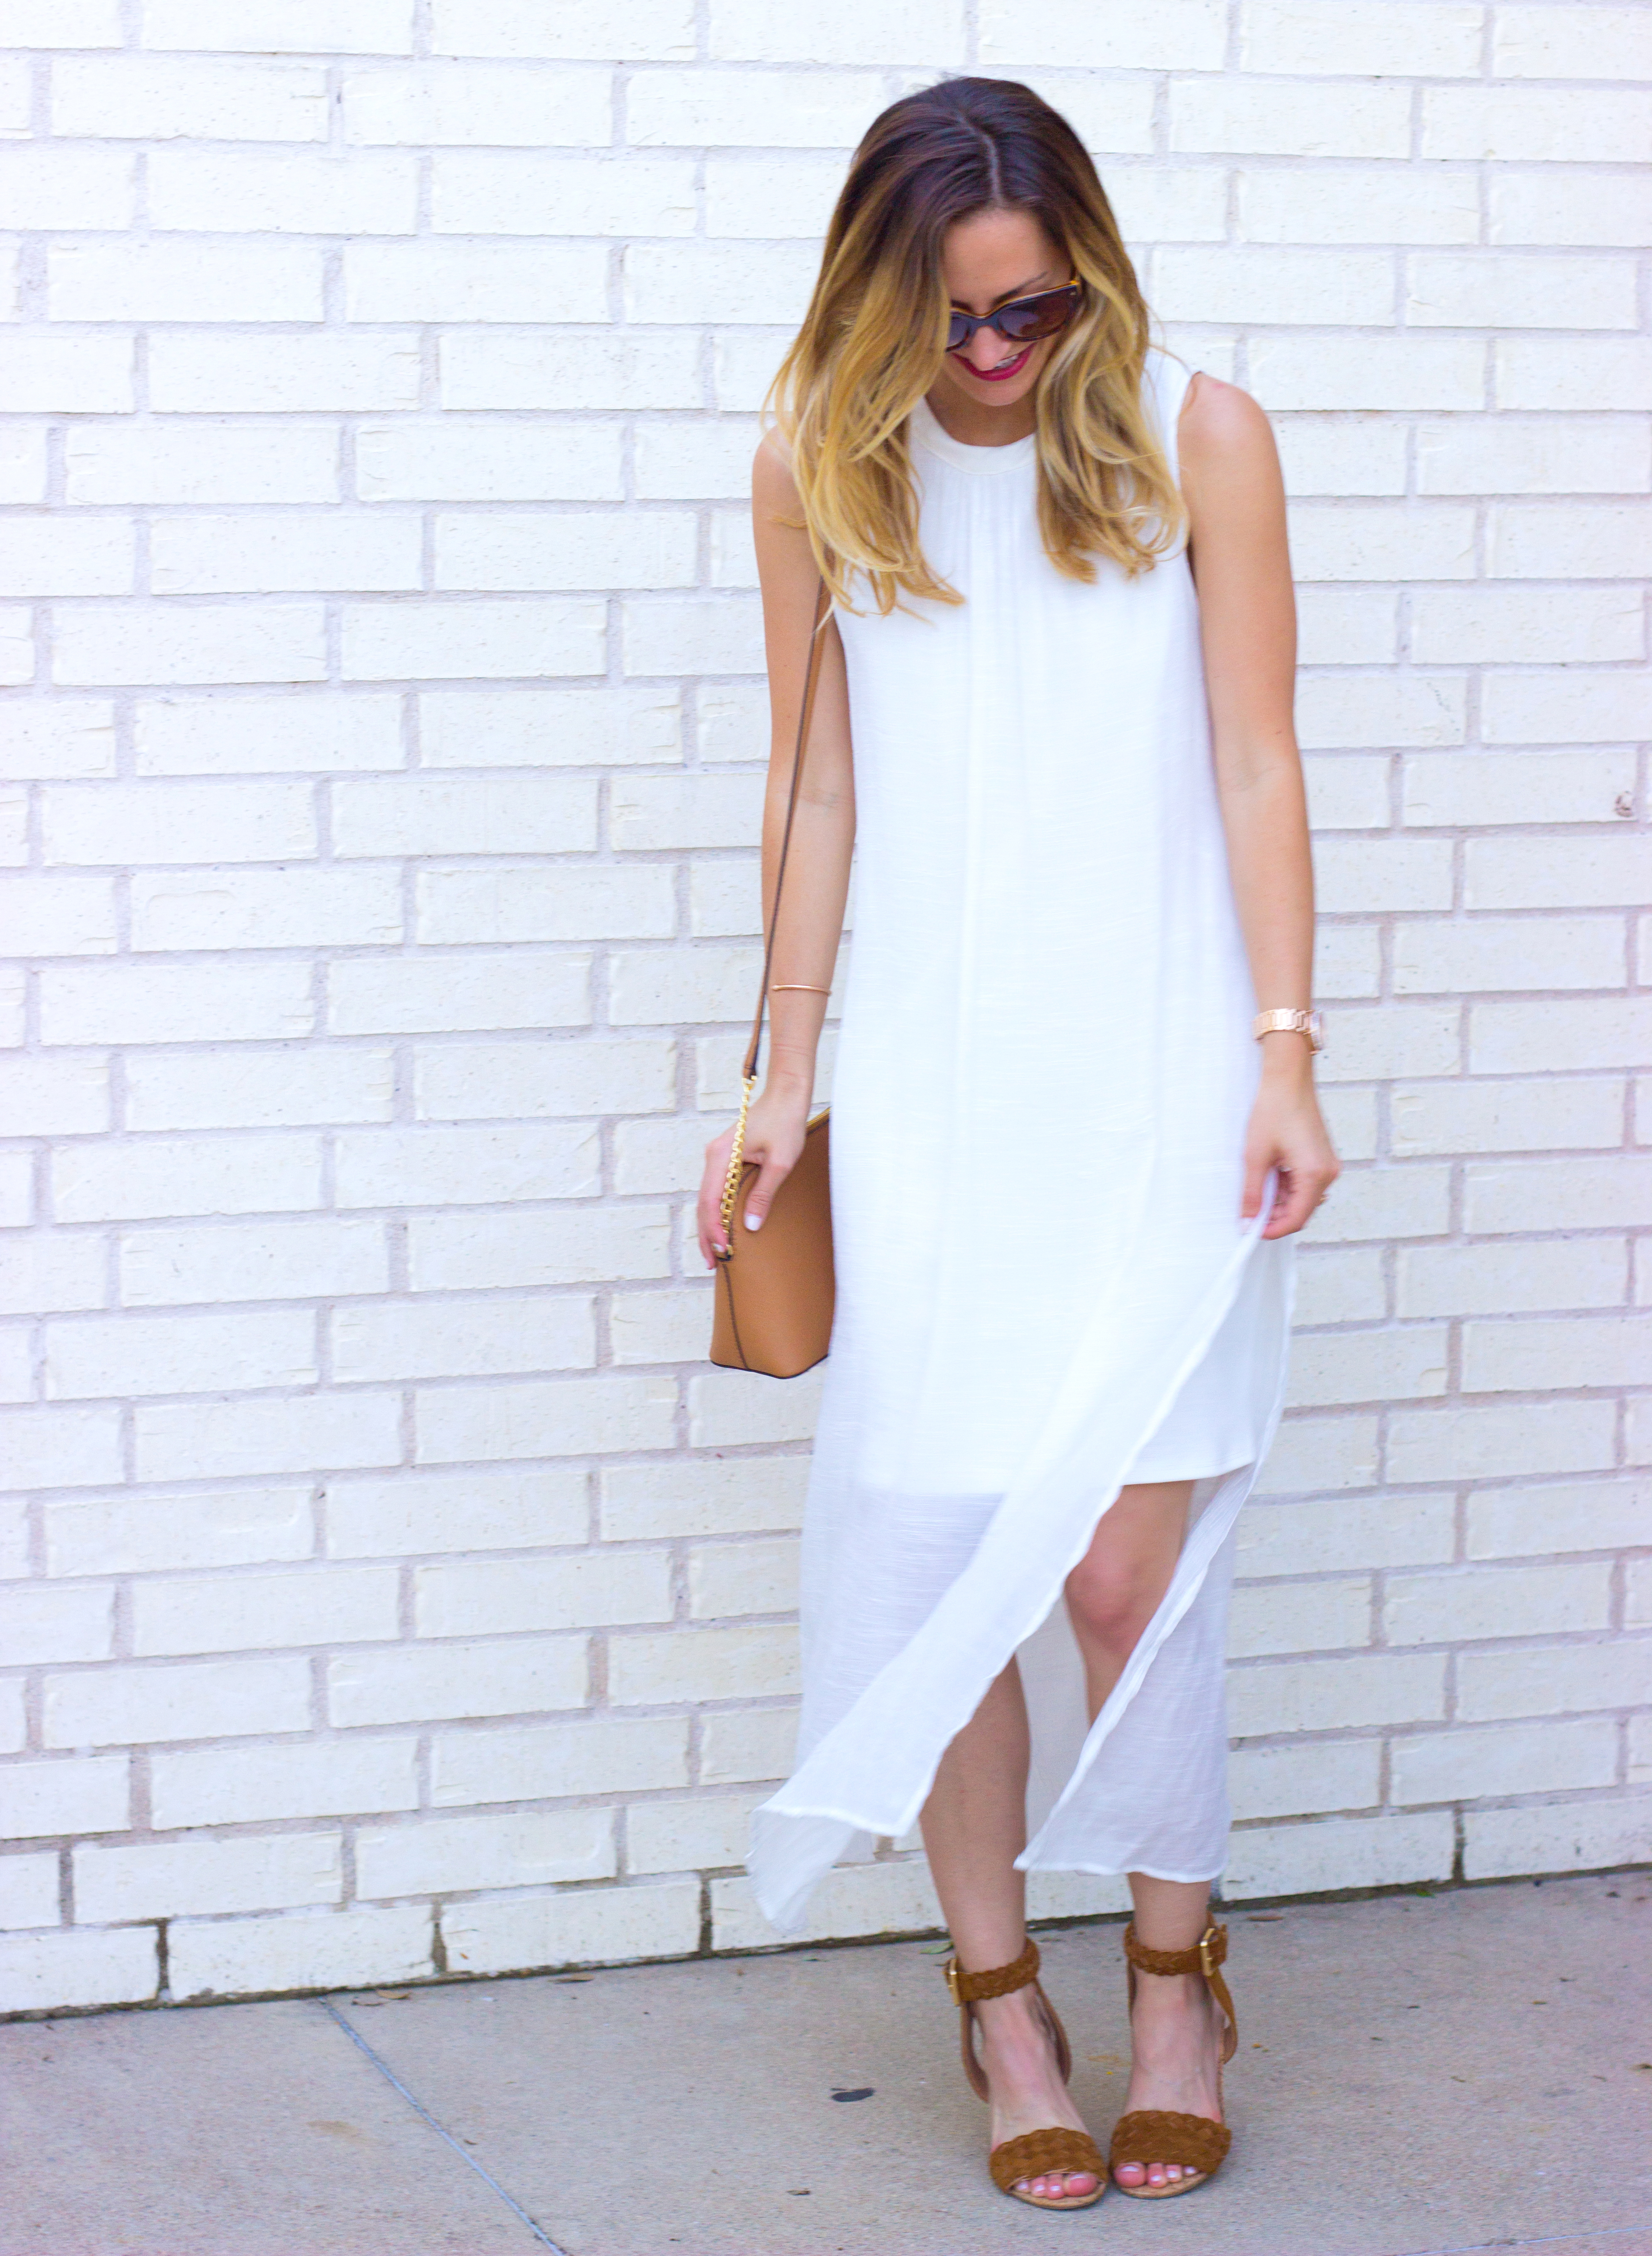 livvyland-blog-olivia-watson-white-sheer-midi-dress-painted-threads-braided-sandal-heels-austin-texas-fashion-blogger-rose-gold-kendra-scott-prada-cateye-sunglasses-spring-outfit-10